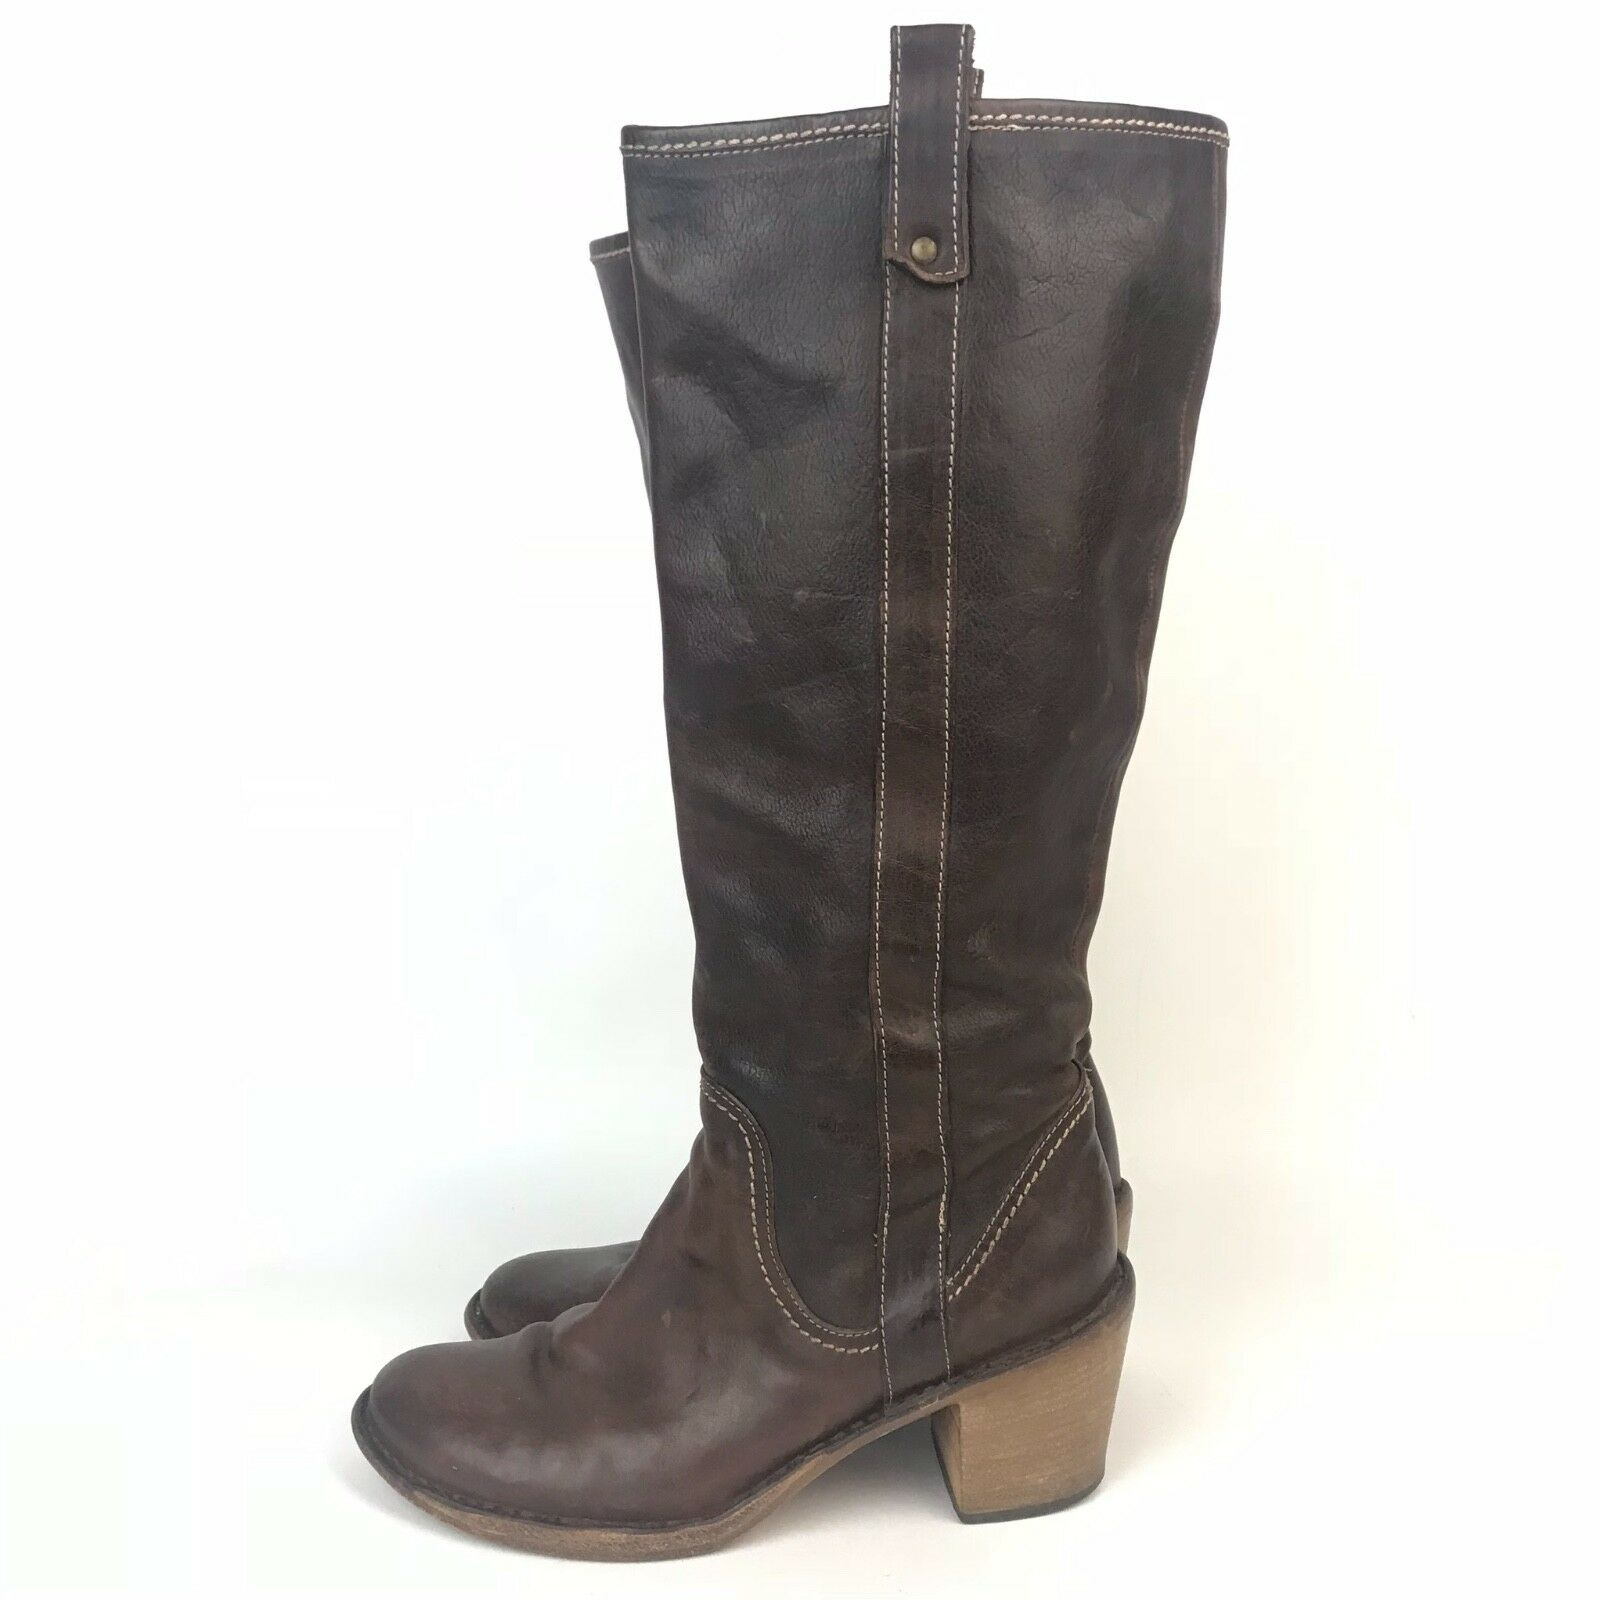 Florentini + Baker Womens Size 7 7 7 Brown Leather Pull On Stacked Heel Boots 7c7713